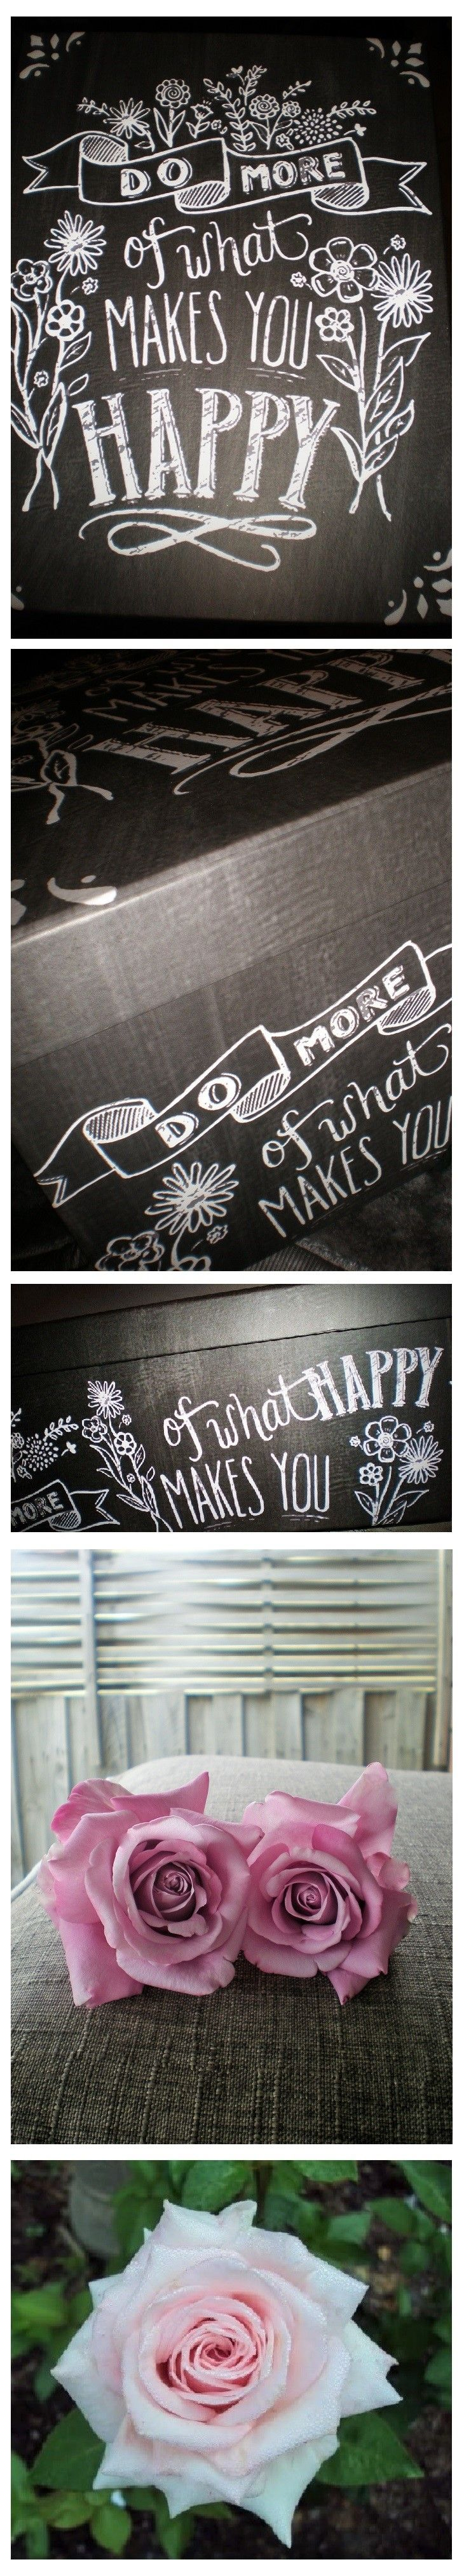 I found this very large chalk & blackboard gift box yesterday when l was out and about shopping. Gorgeous! So, if you happen to get a gift mailed in this, you'll know it's from me!! Lol. With Love. X (p.s. my email is still down, could take another 48 hours ... so message me here if you need to).